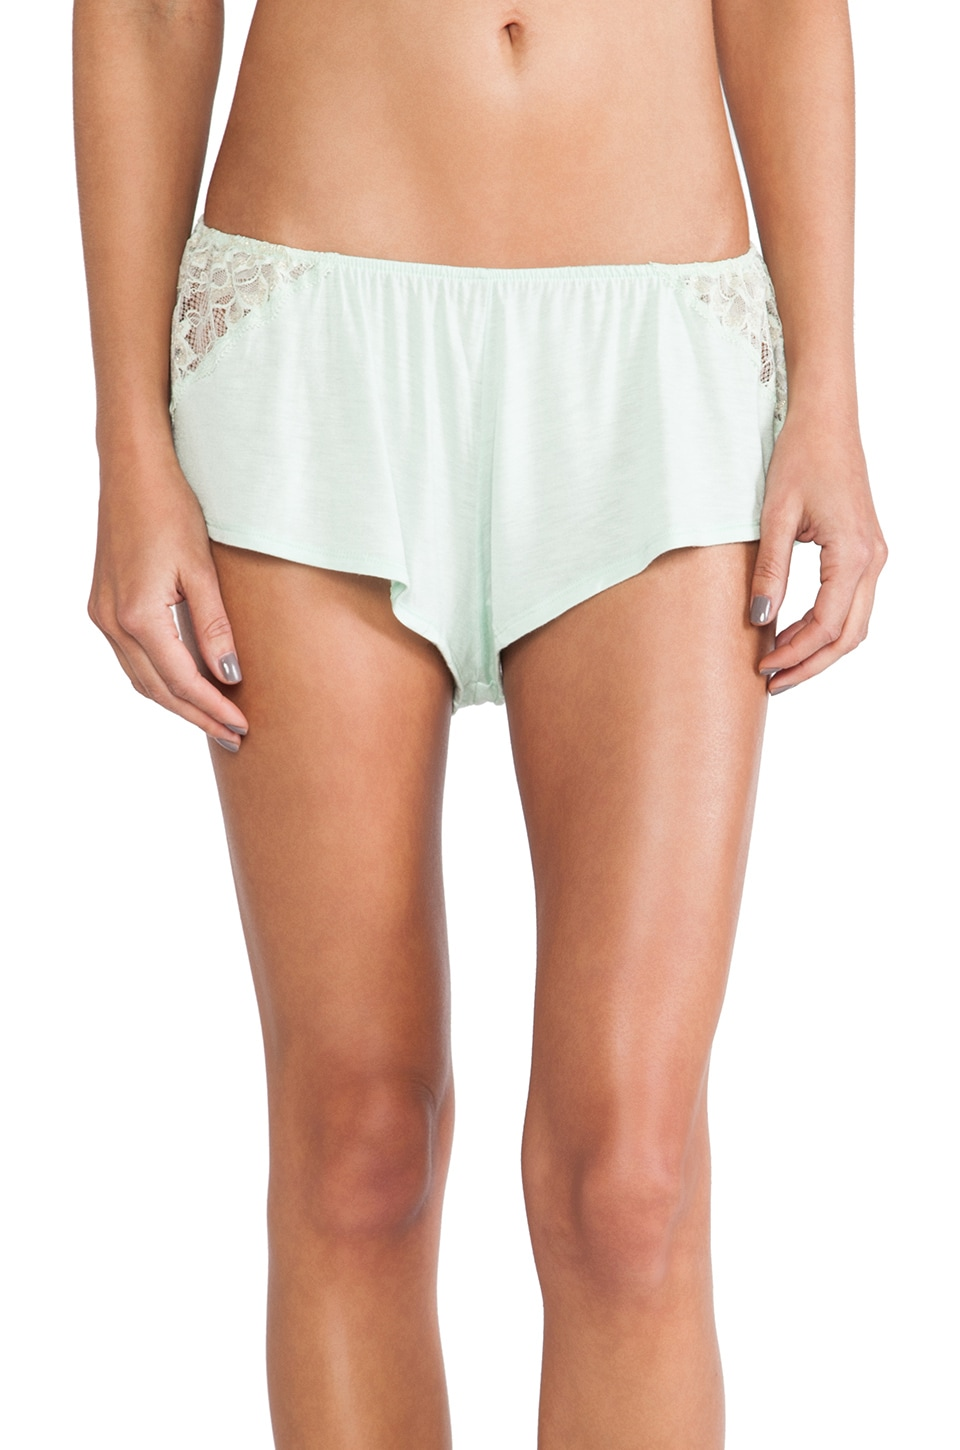 eberjey Golden Girl Tap Pant in Pistachio